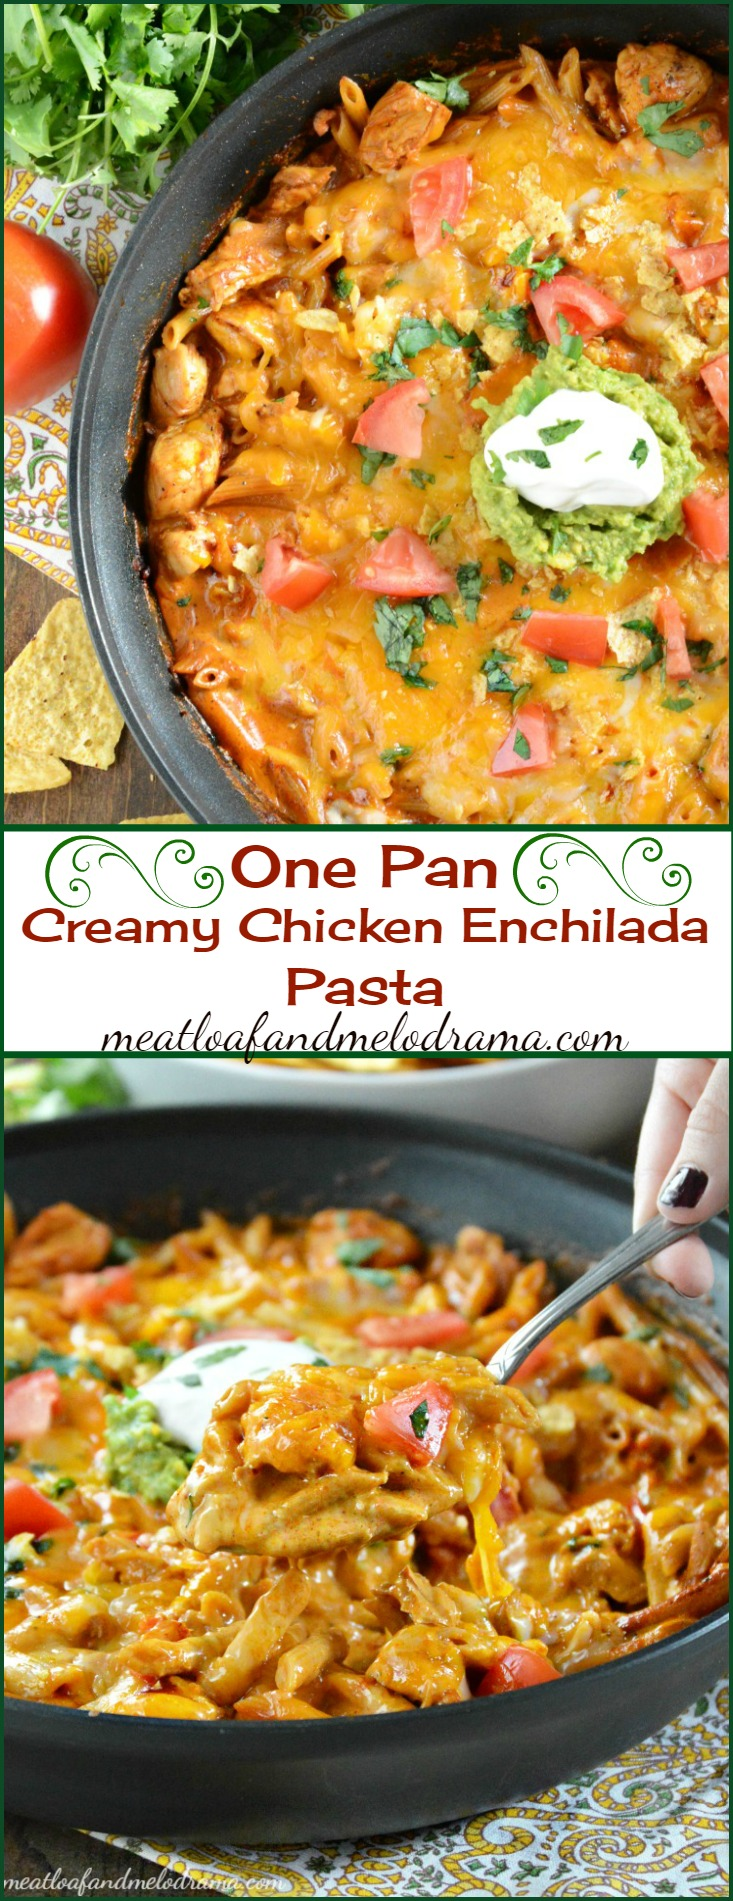 One Pan Creamy Chicken Enchilada Pasta